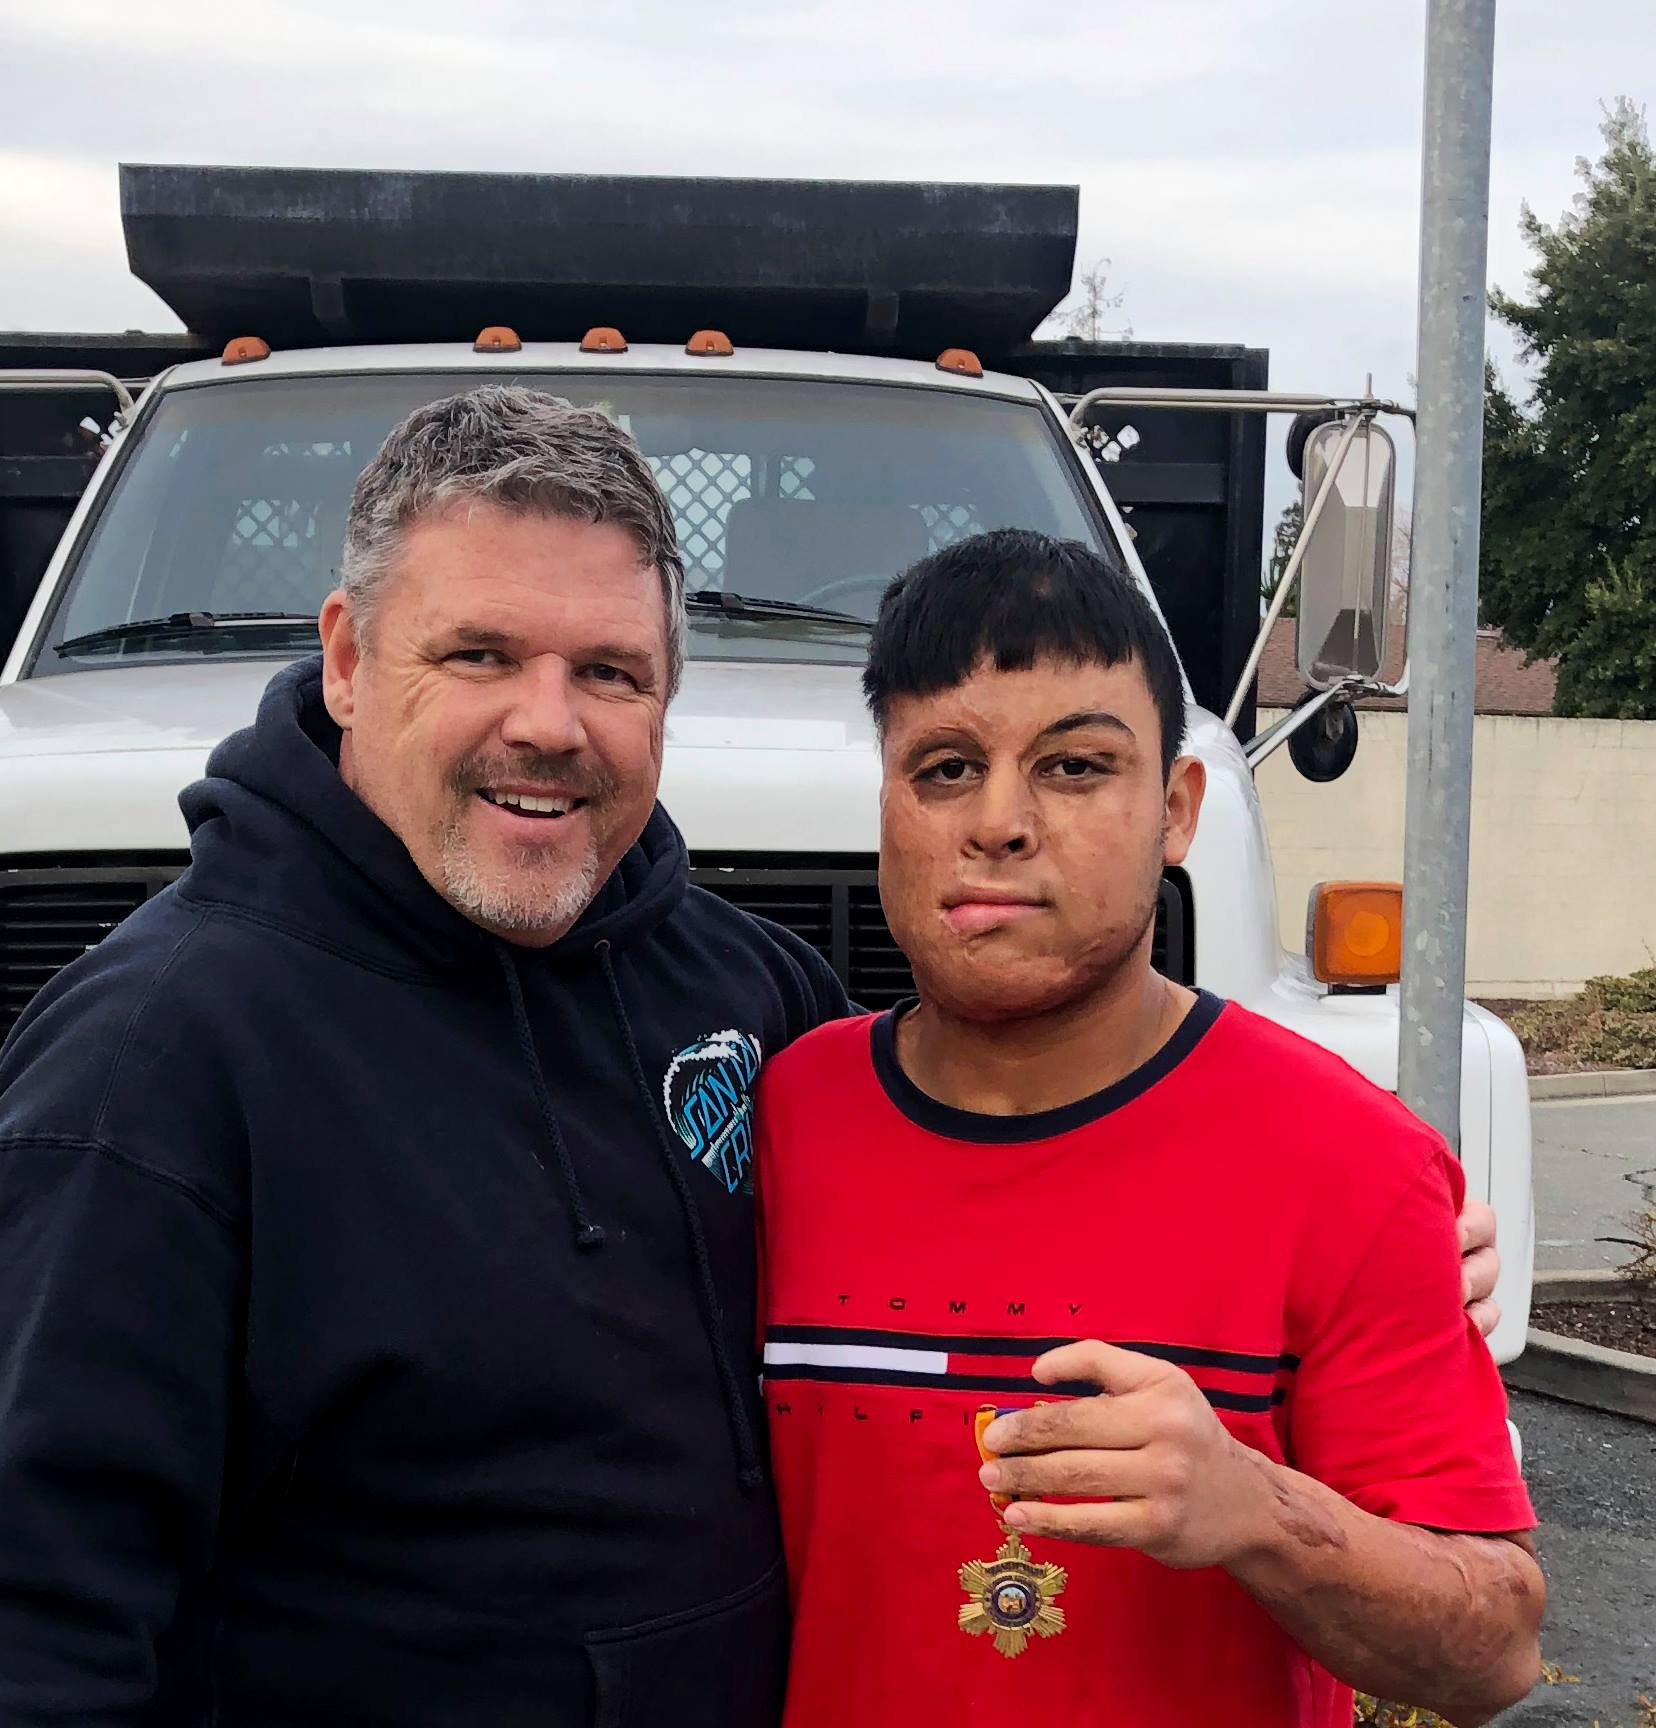 officer-reunited-scarred-teen-flores-thorp